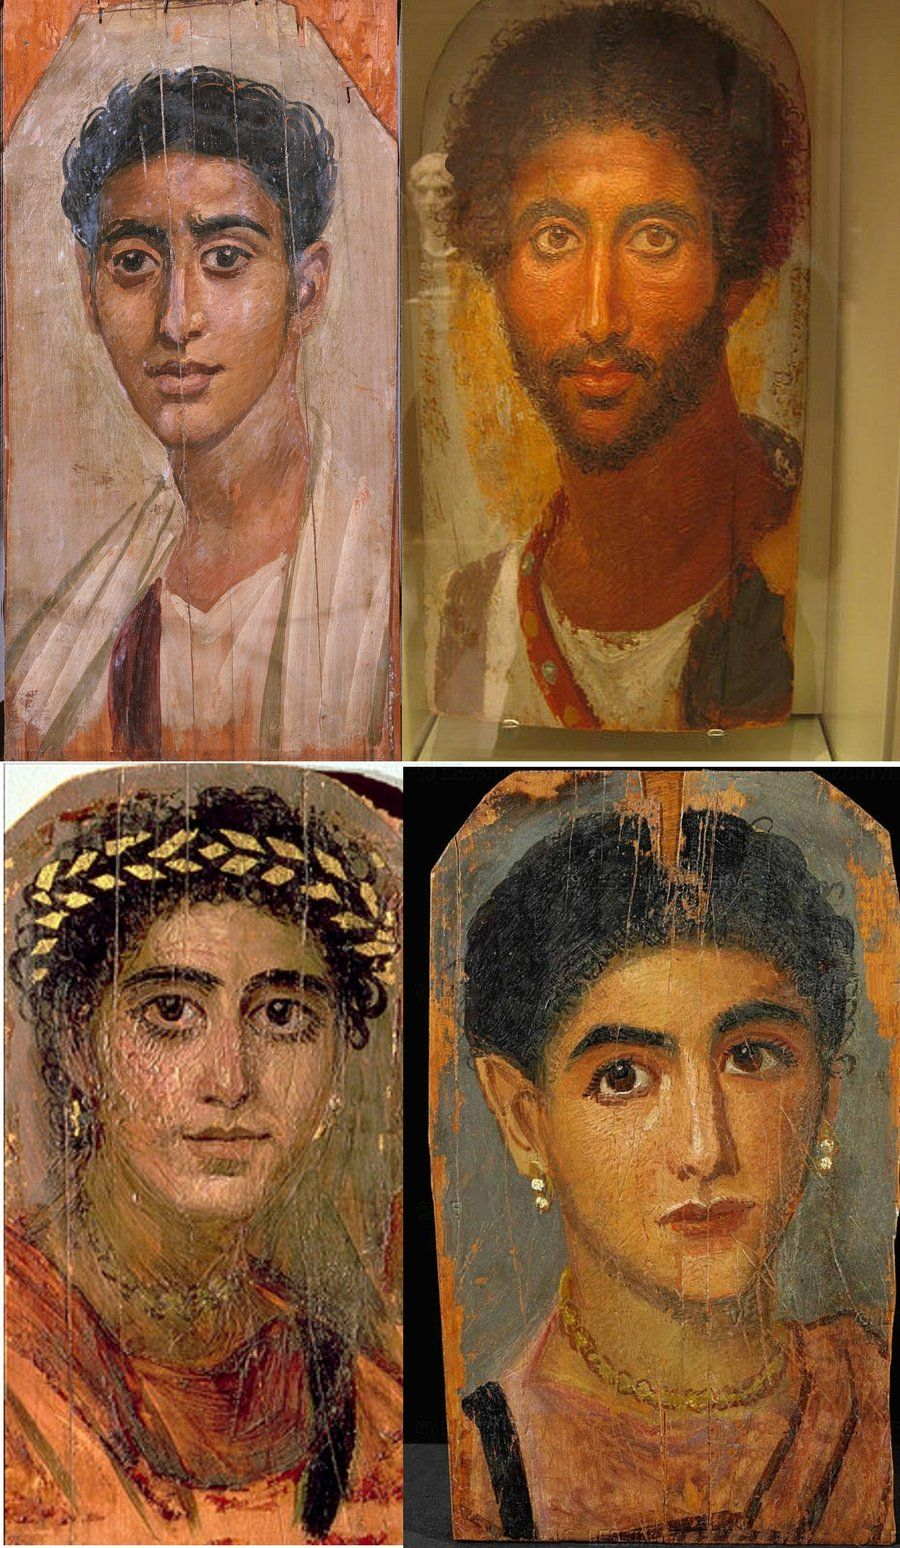 Pittura Romana Fayum Four Portrait Paintings From The 2nd Century Ad Showing Mummy